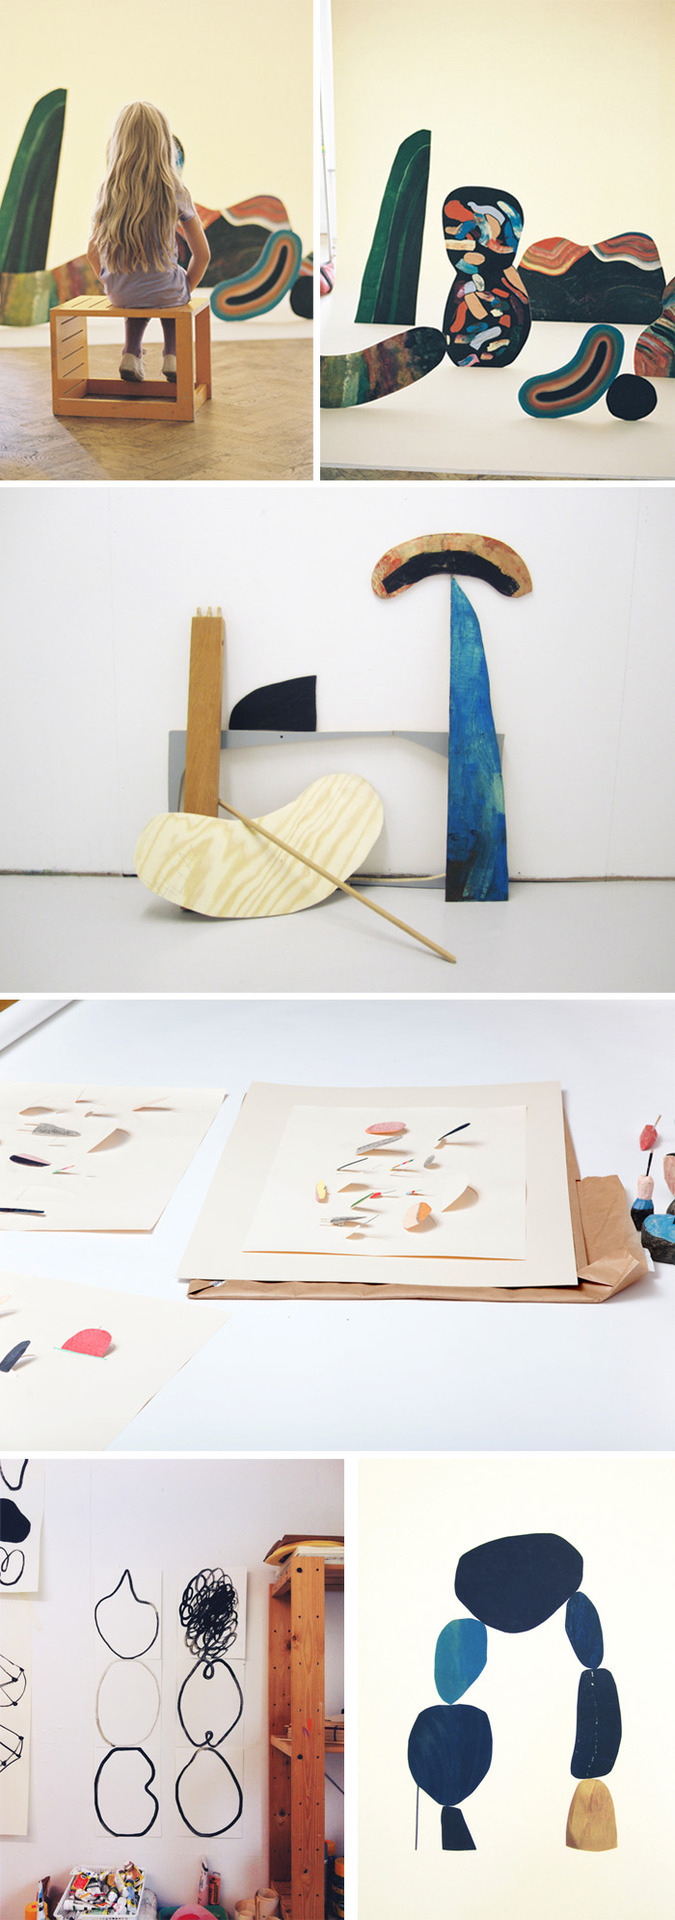 Here are some beautiful images of Malin Gabriella Nordin's work that I just discovered, from her website and blog.(via Lena Corwin)